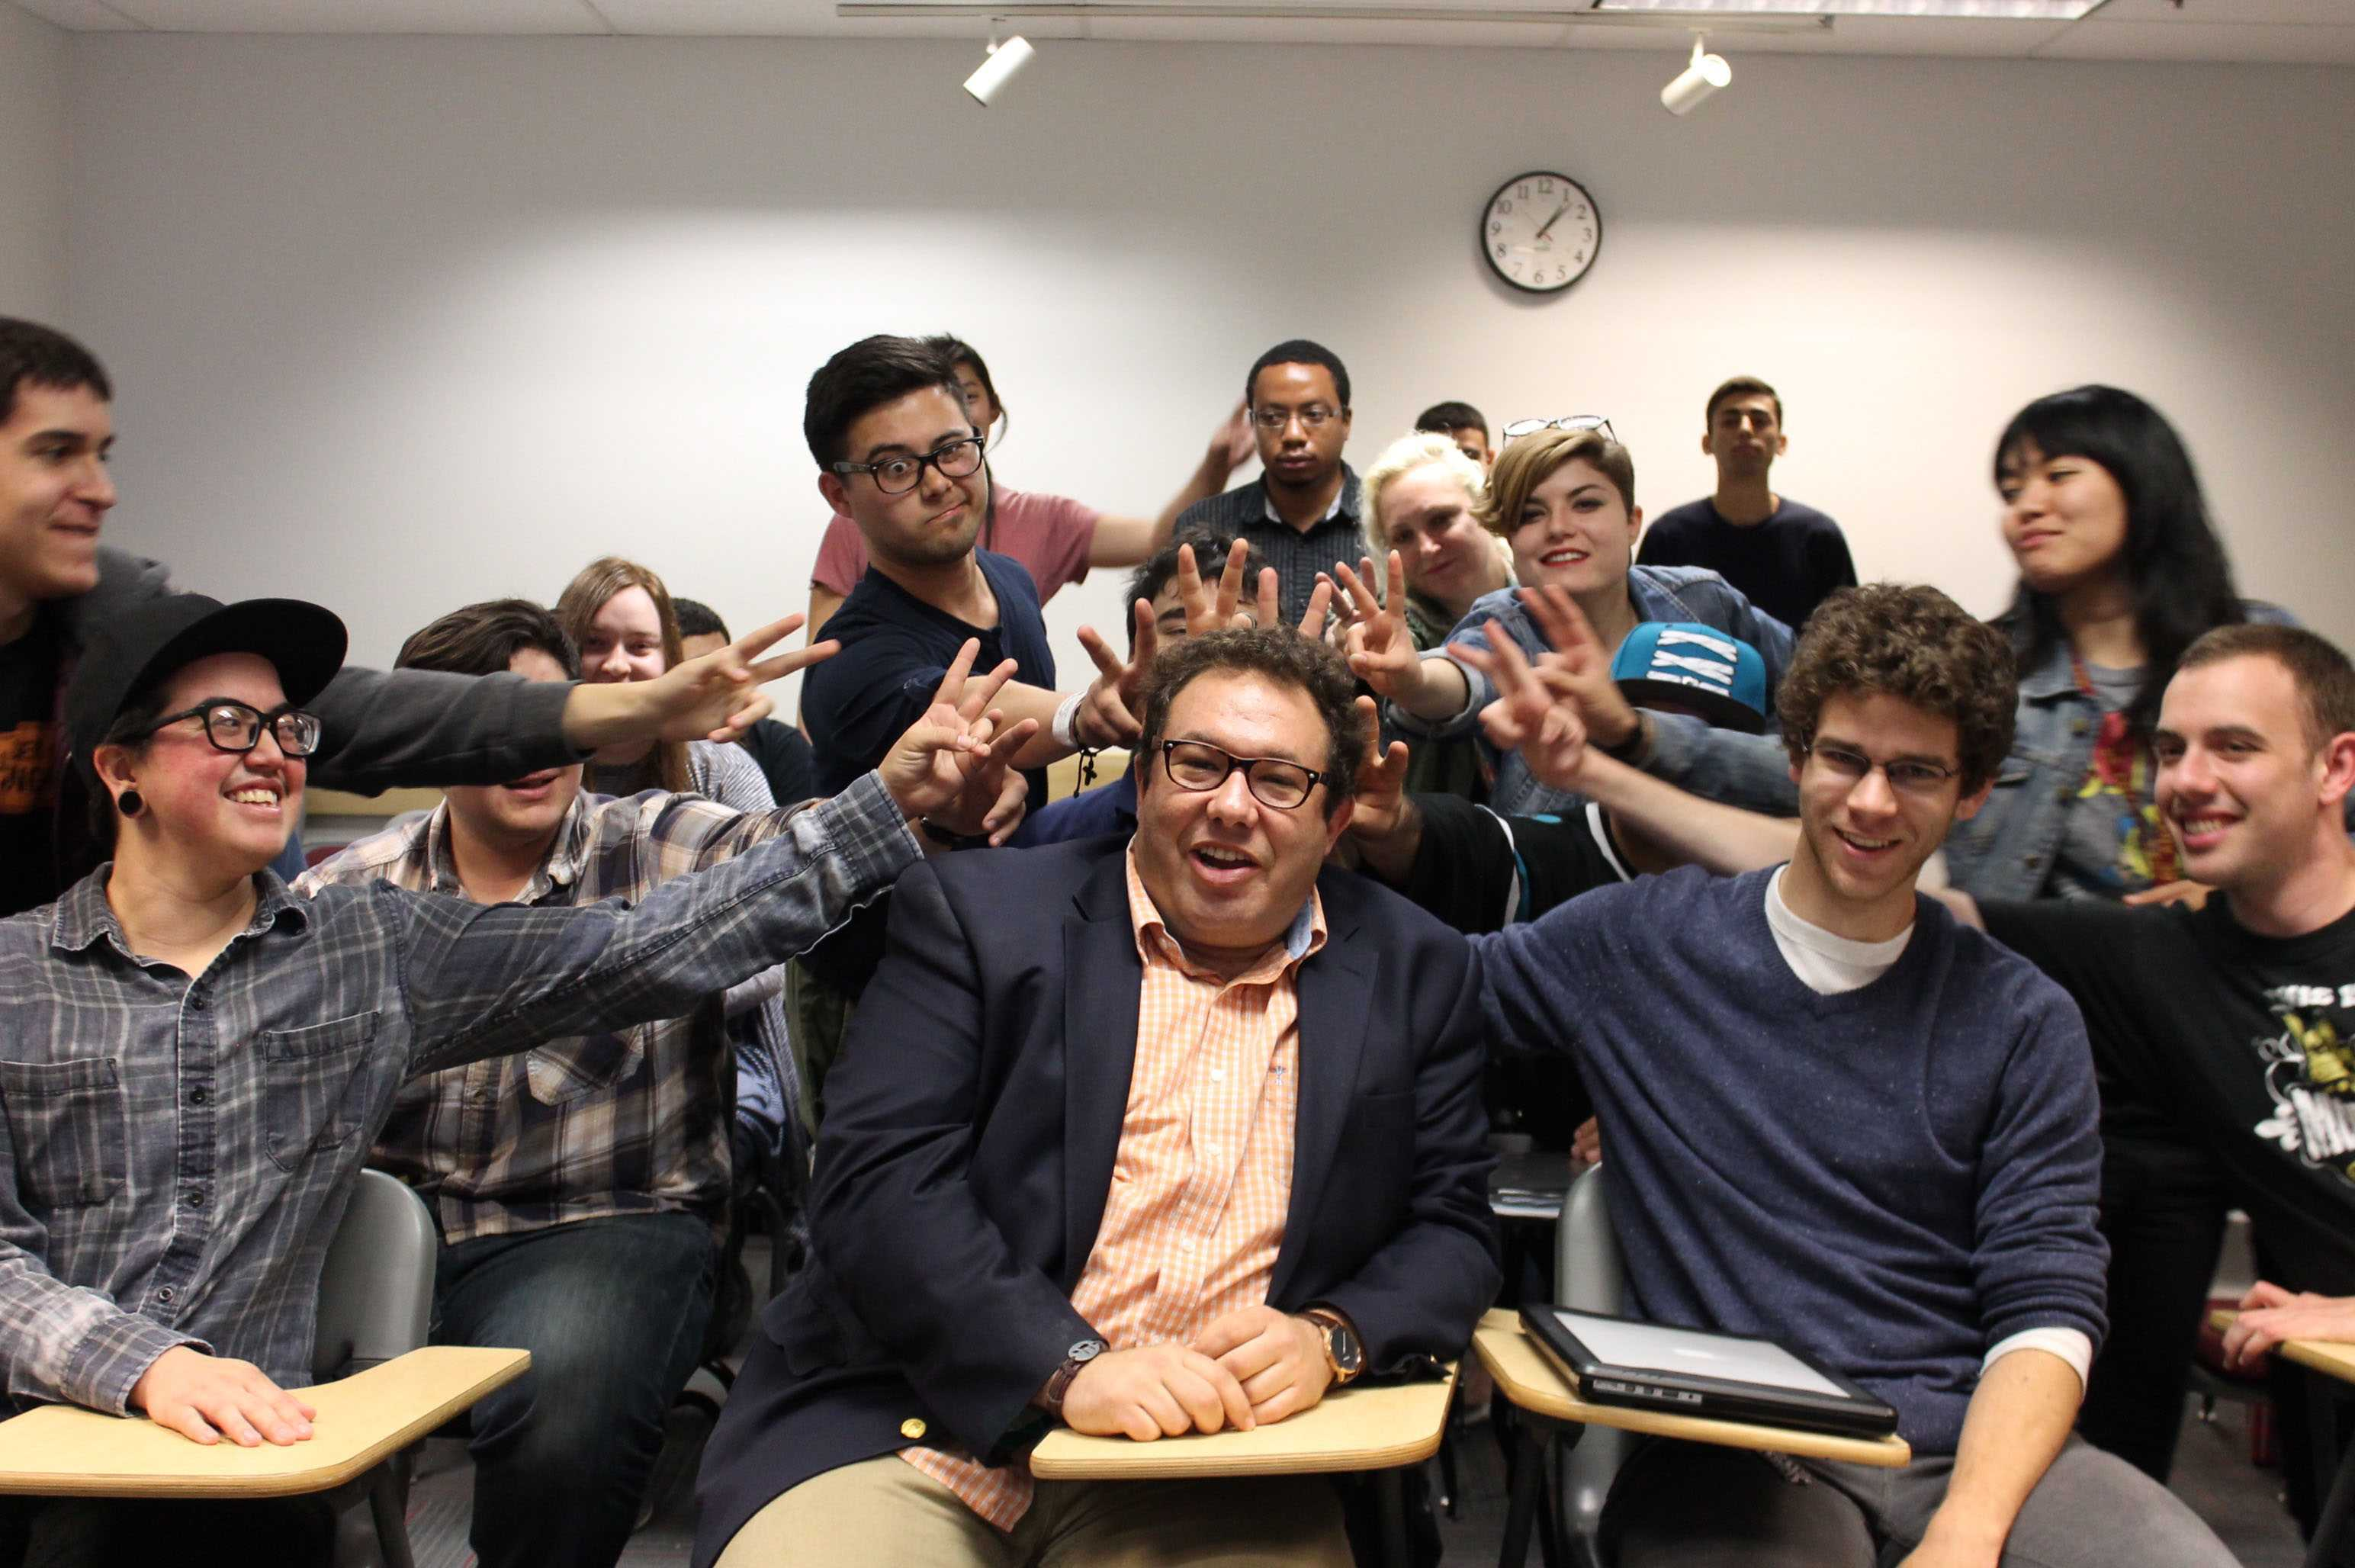 Barak Goldman poses with his students from advanced screenwriting workshop class.